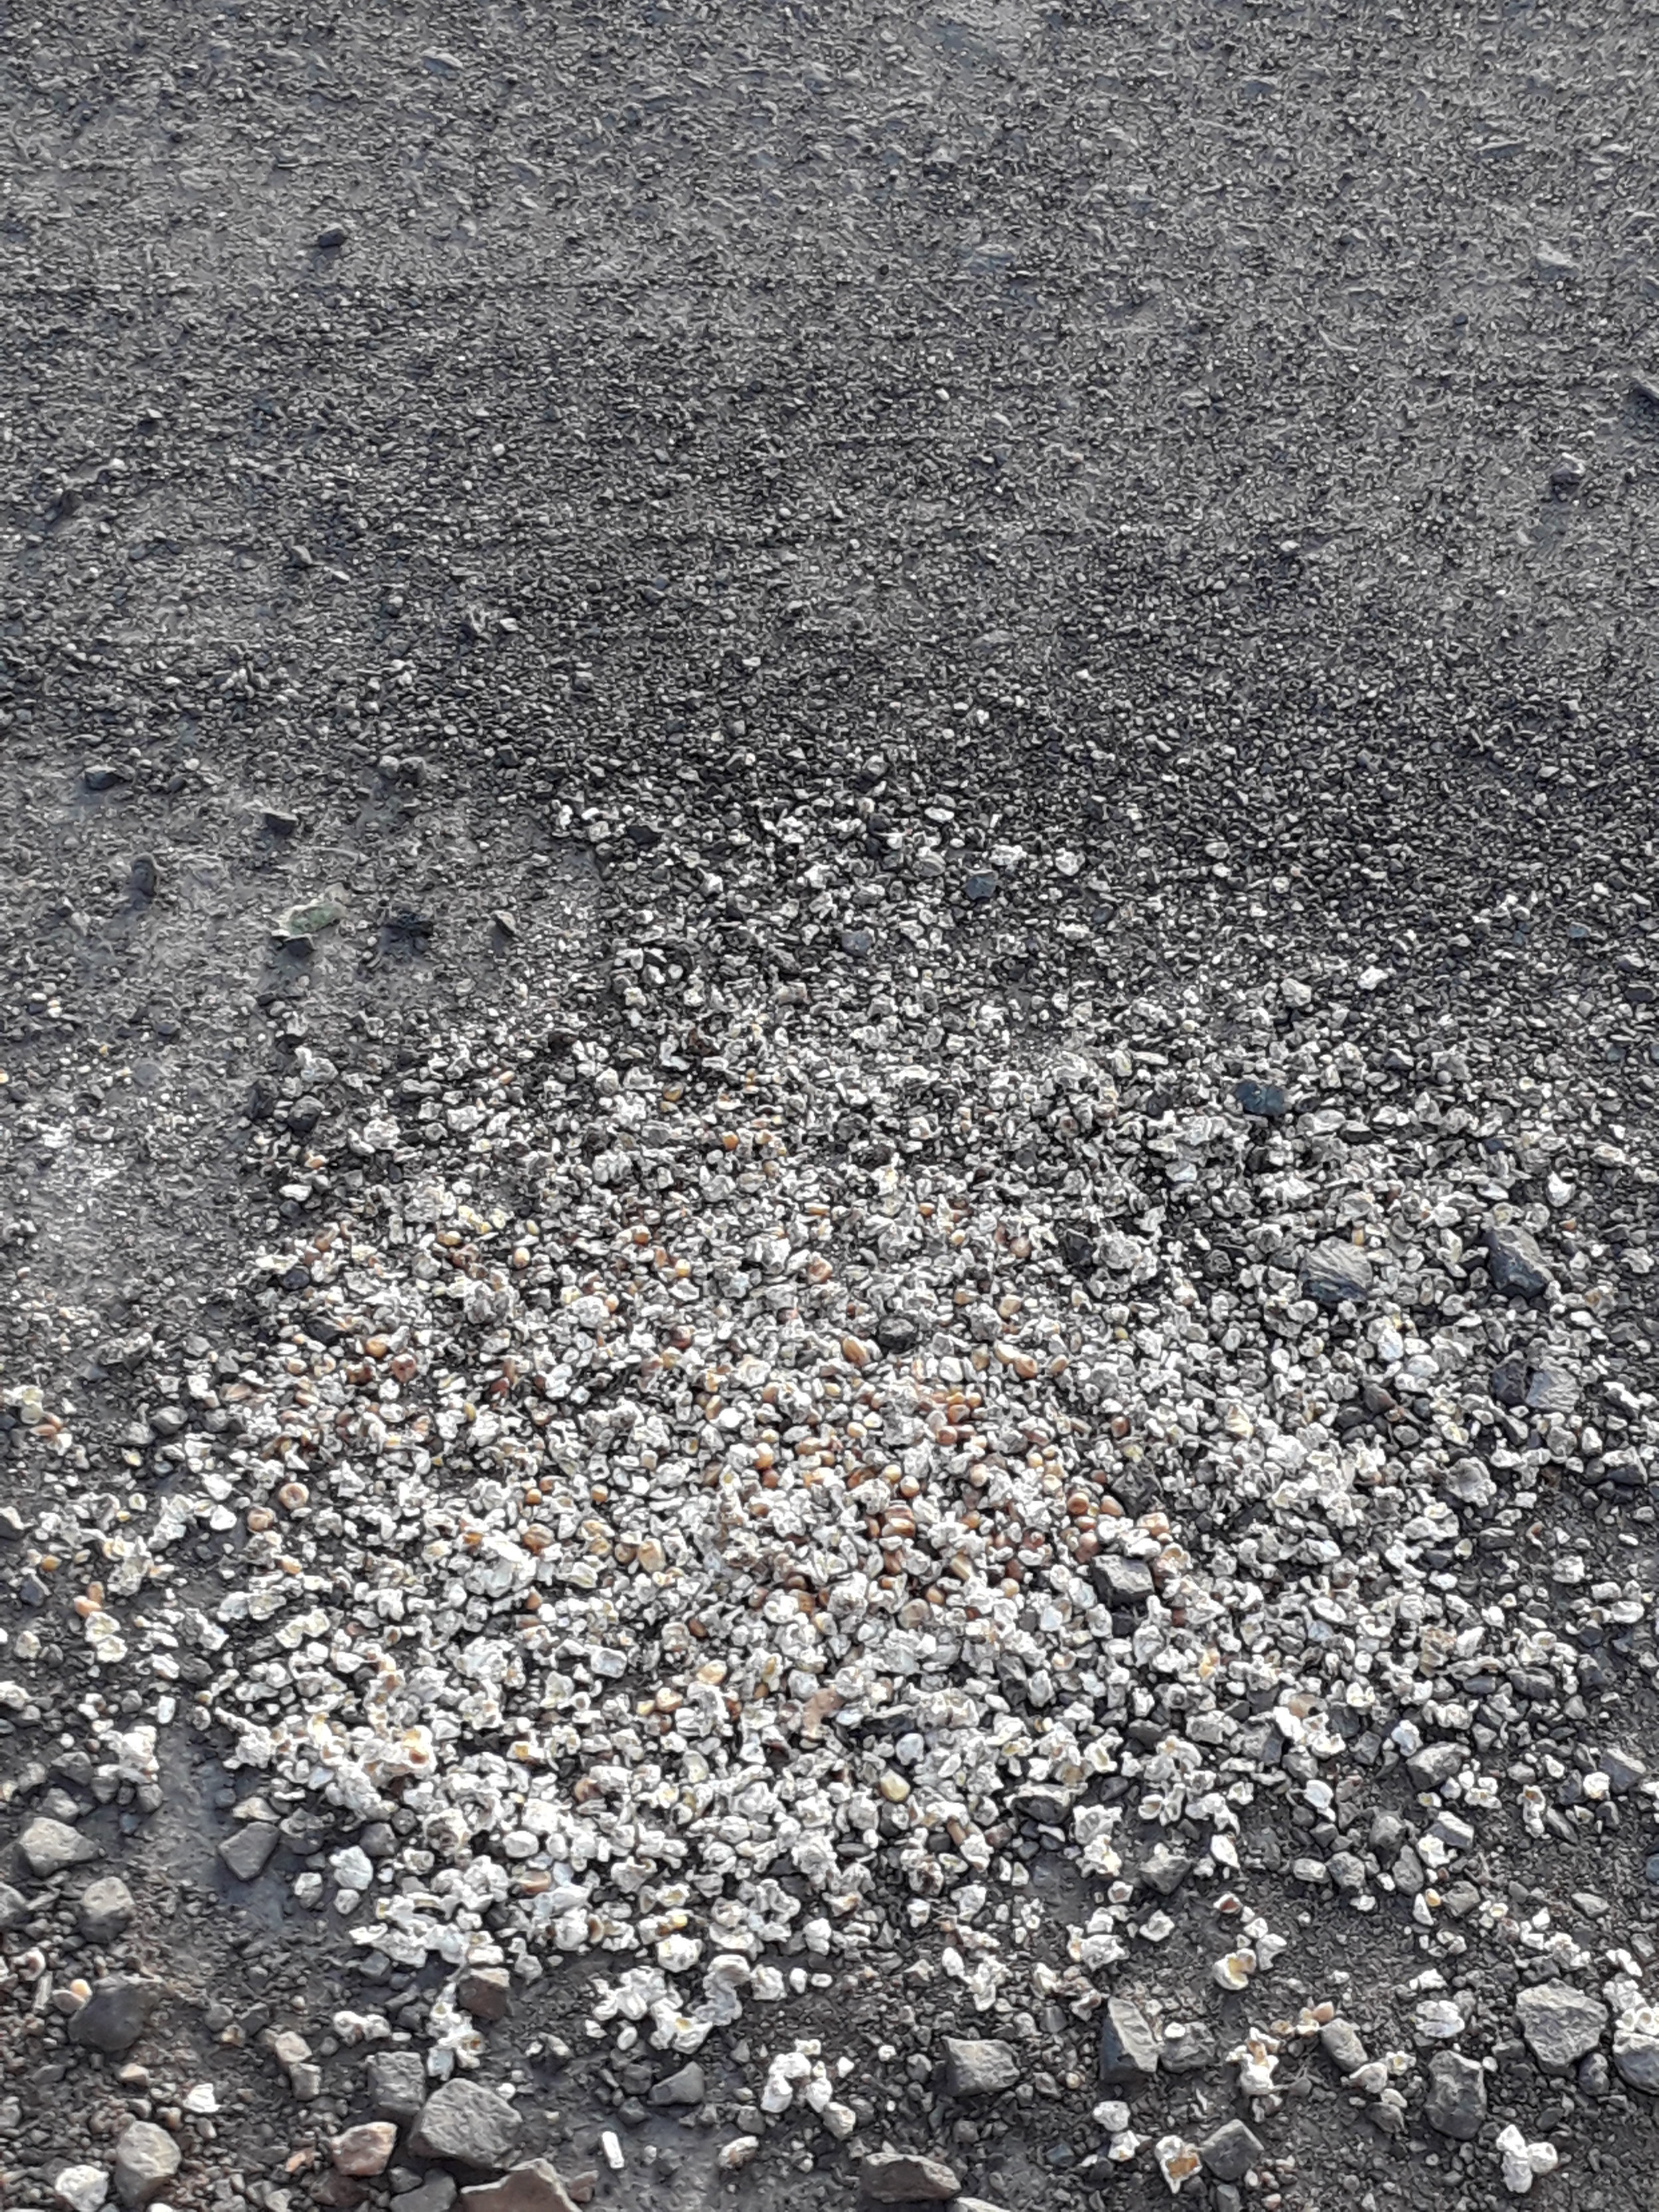 This might just look like popcorn spilled on the road, but it's actually the remnants of a sacrifice.